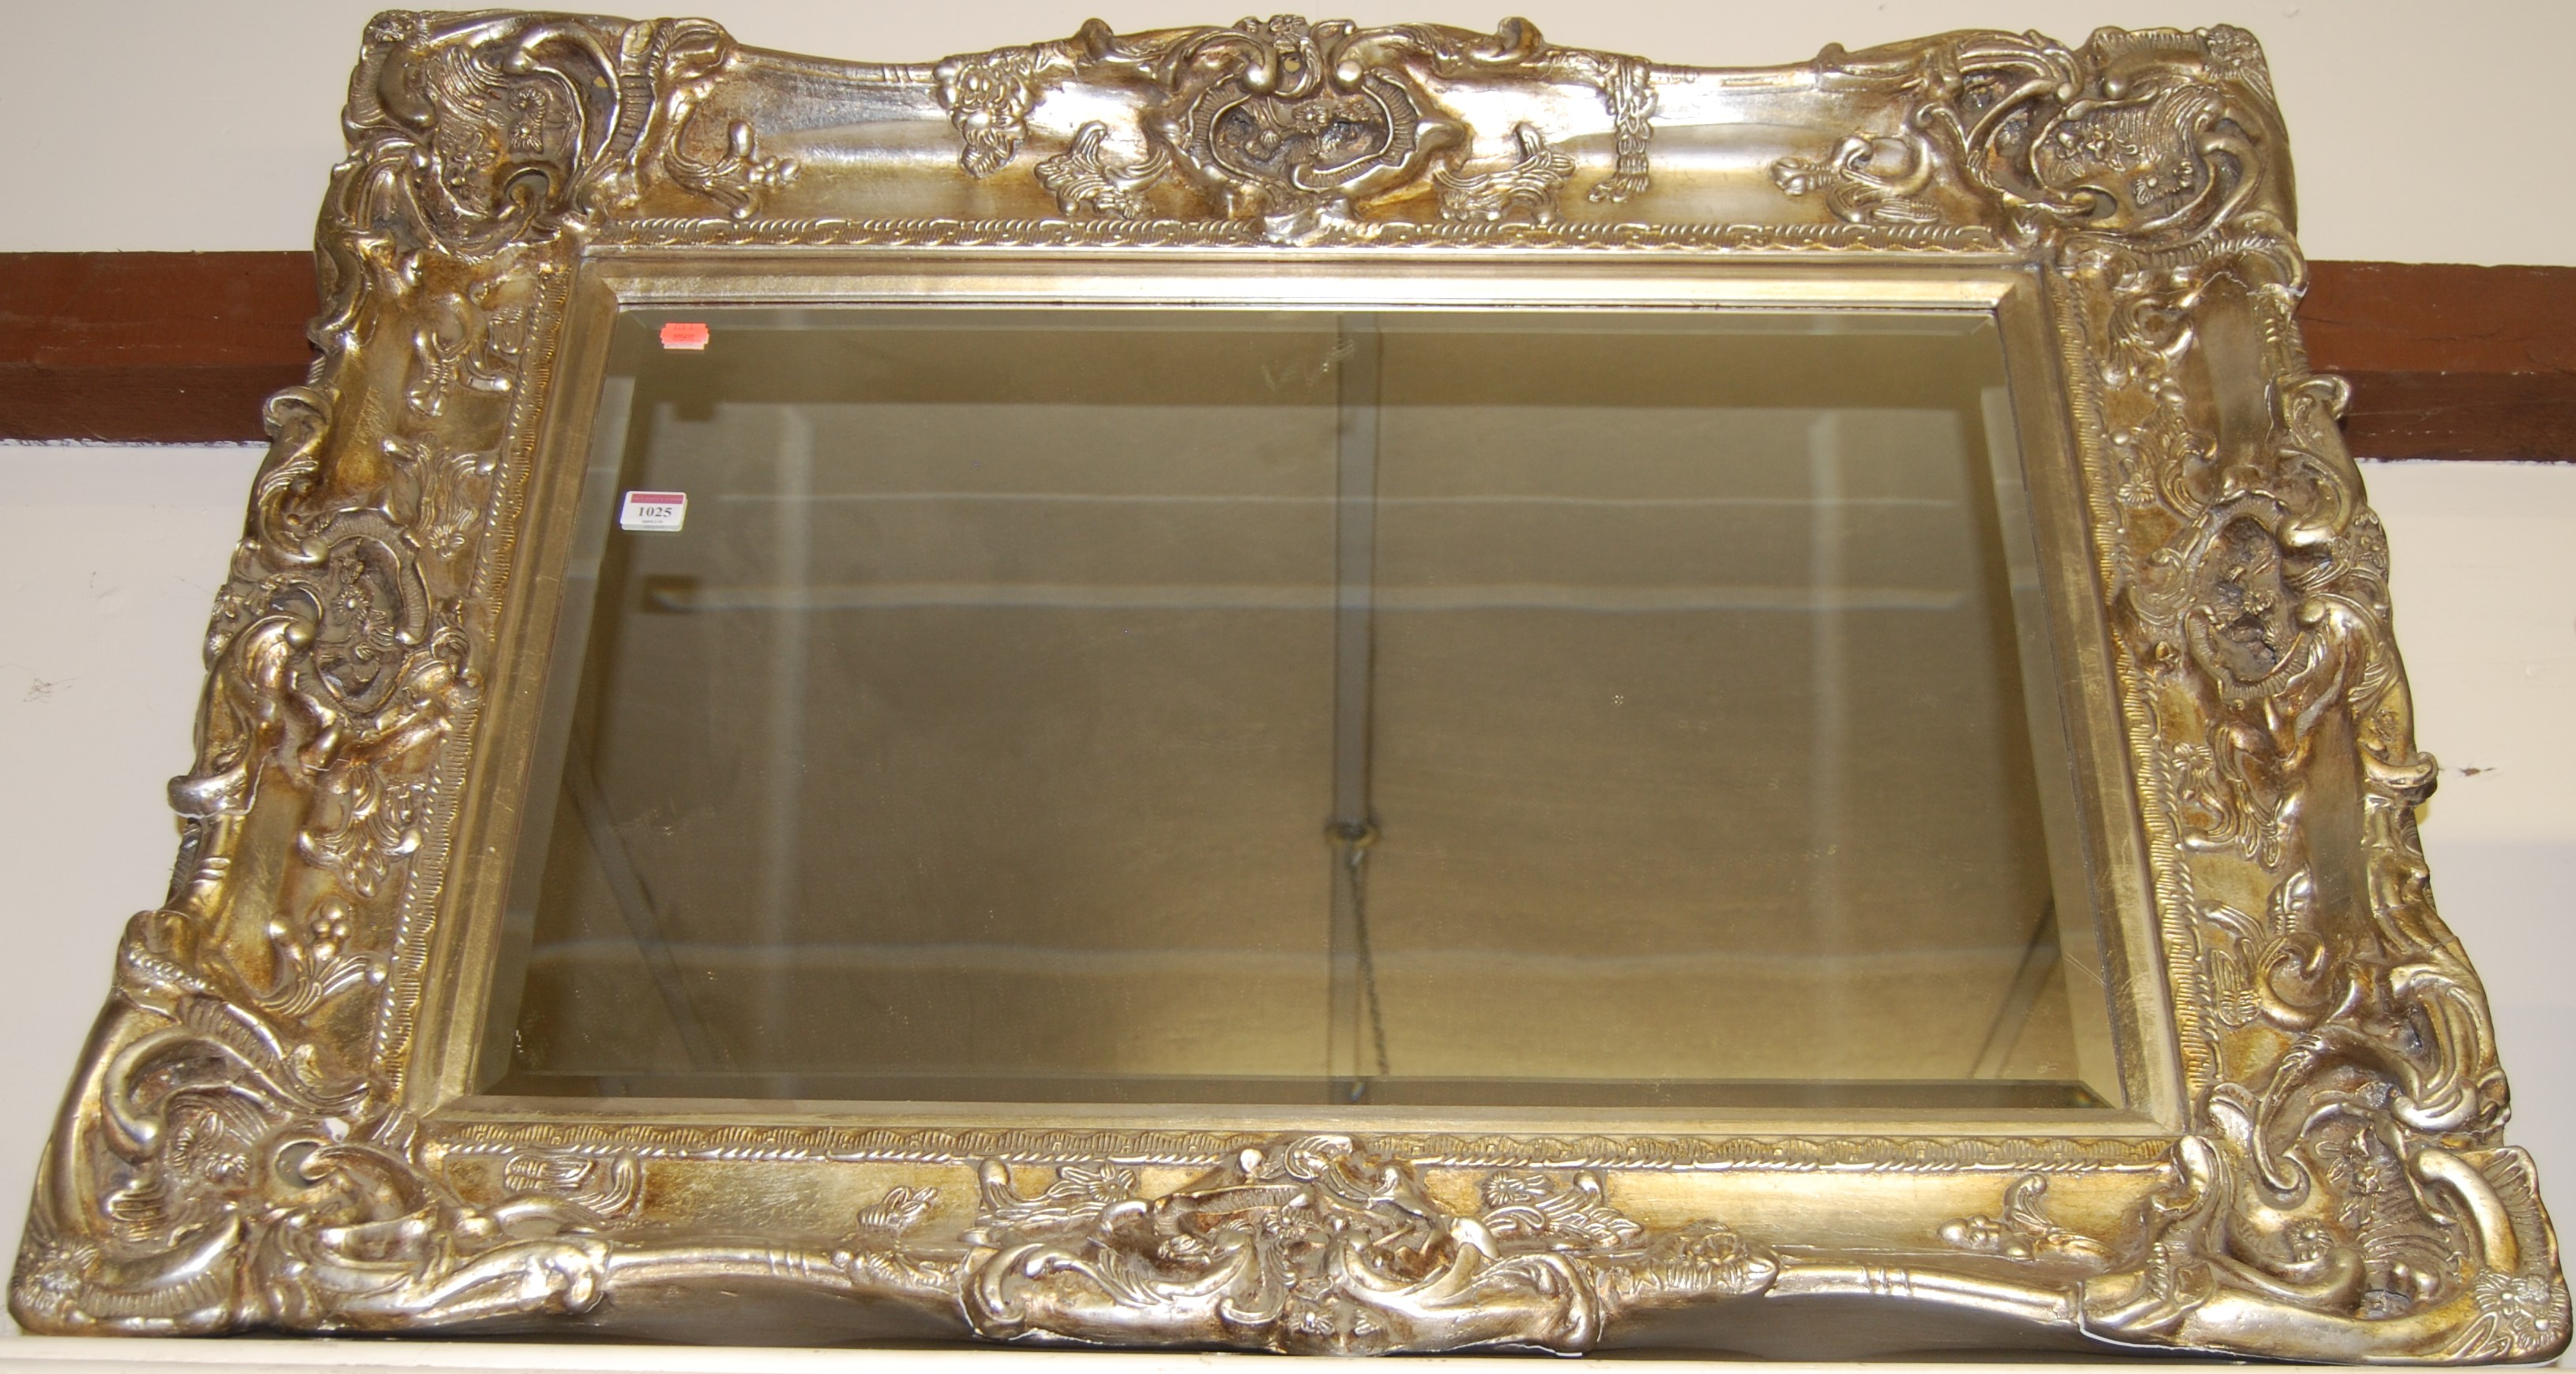 Lot 1025 - A reproduction silvered composition moulded wall mirror, 81 x 106cm